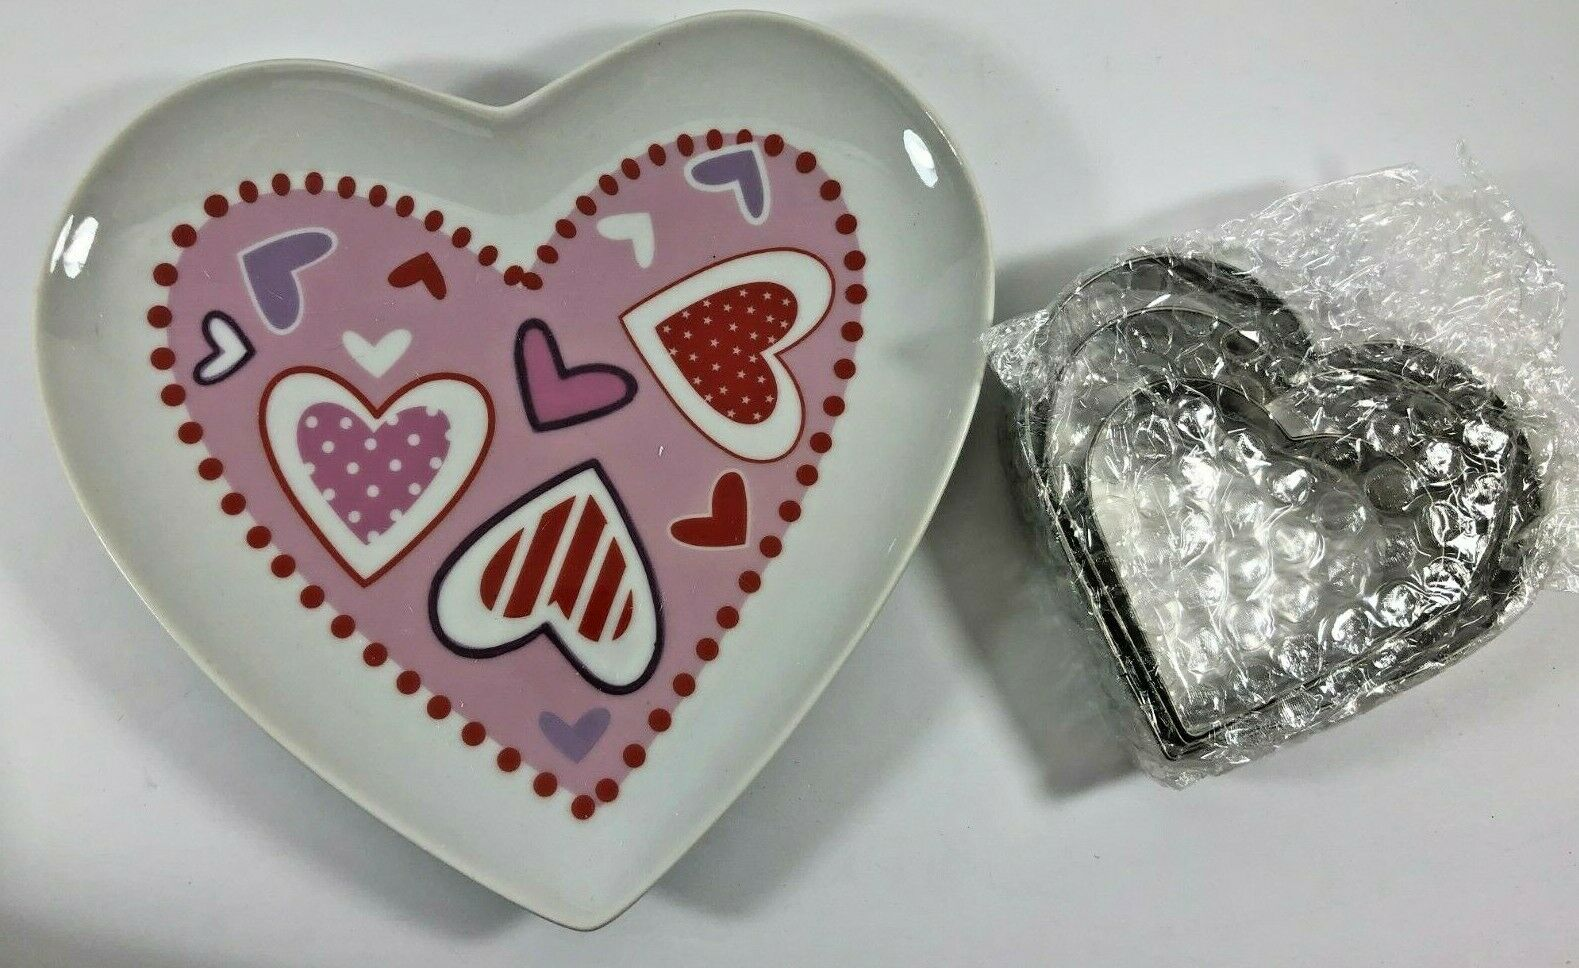 NEW 2009 Avon Heart Shaped Cookie Plate with Cutters and Recipe Card